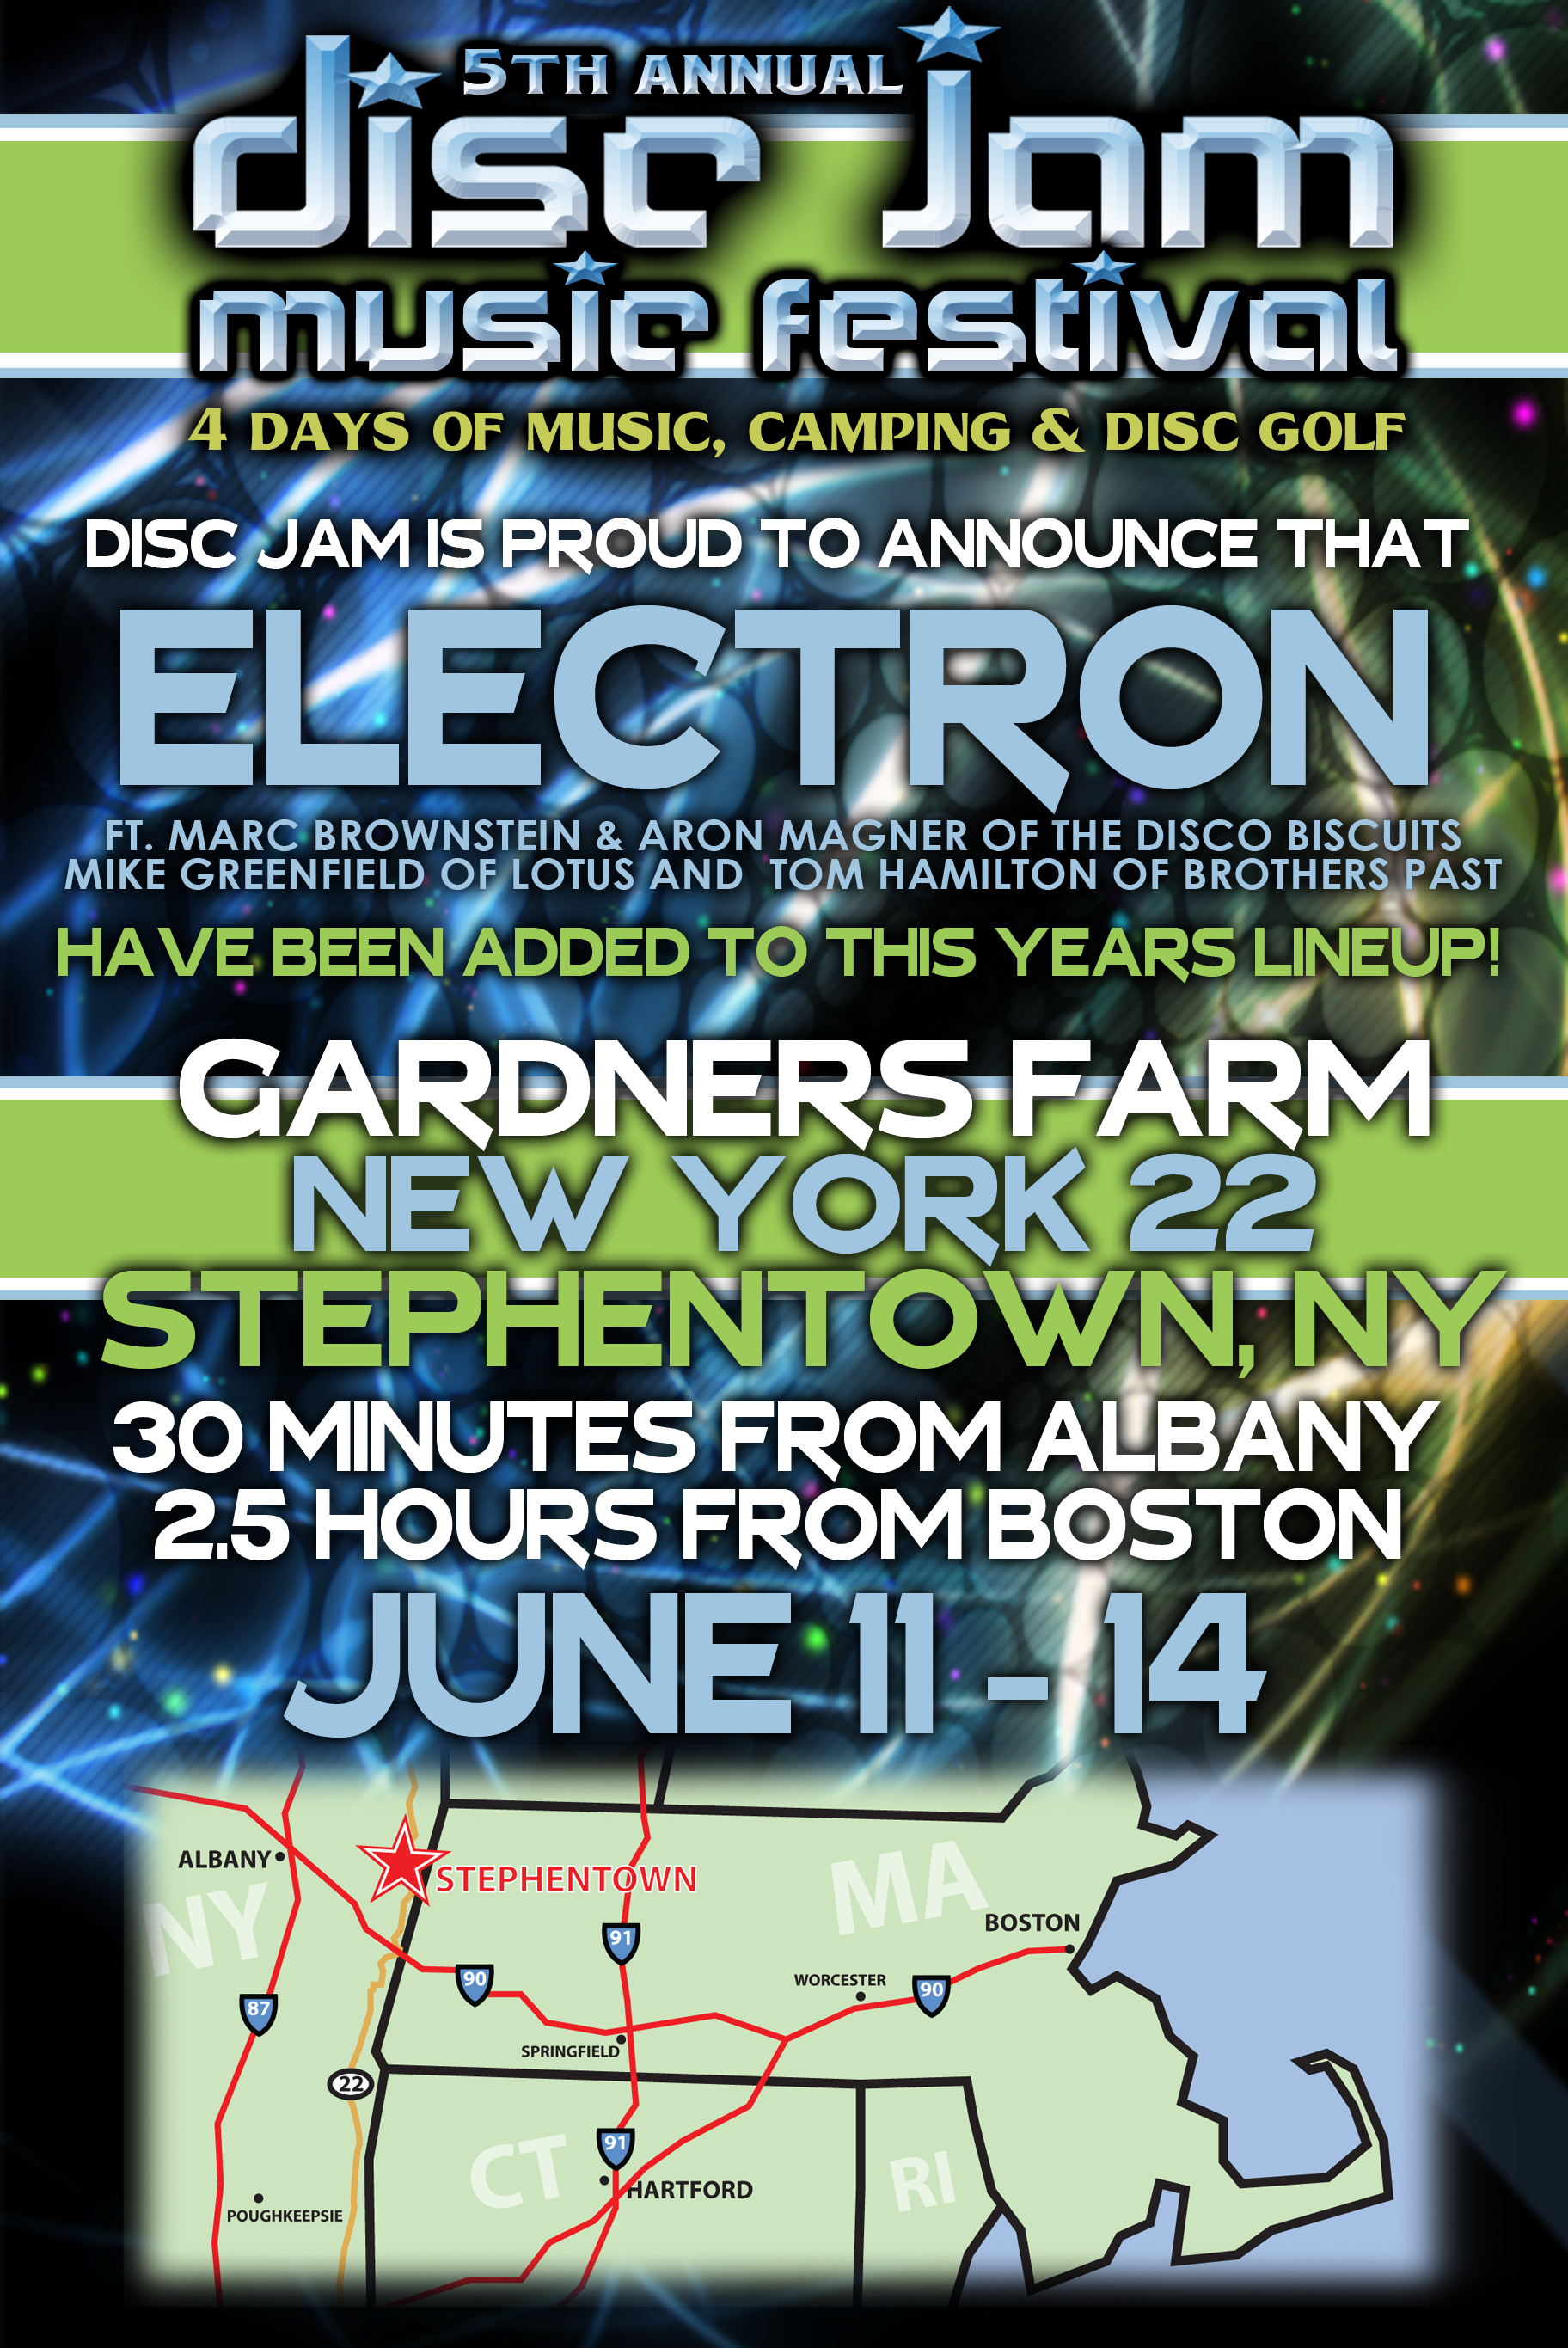 Disc Jam Announces Change of Location, Electron Added to Lineup